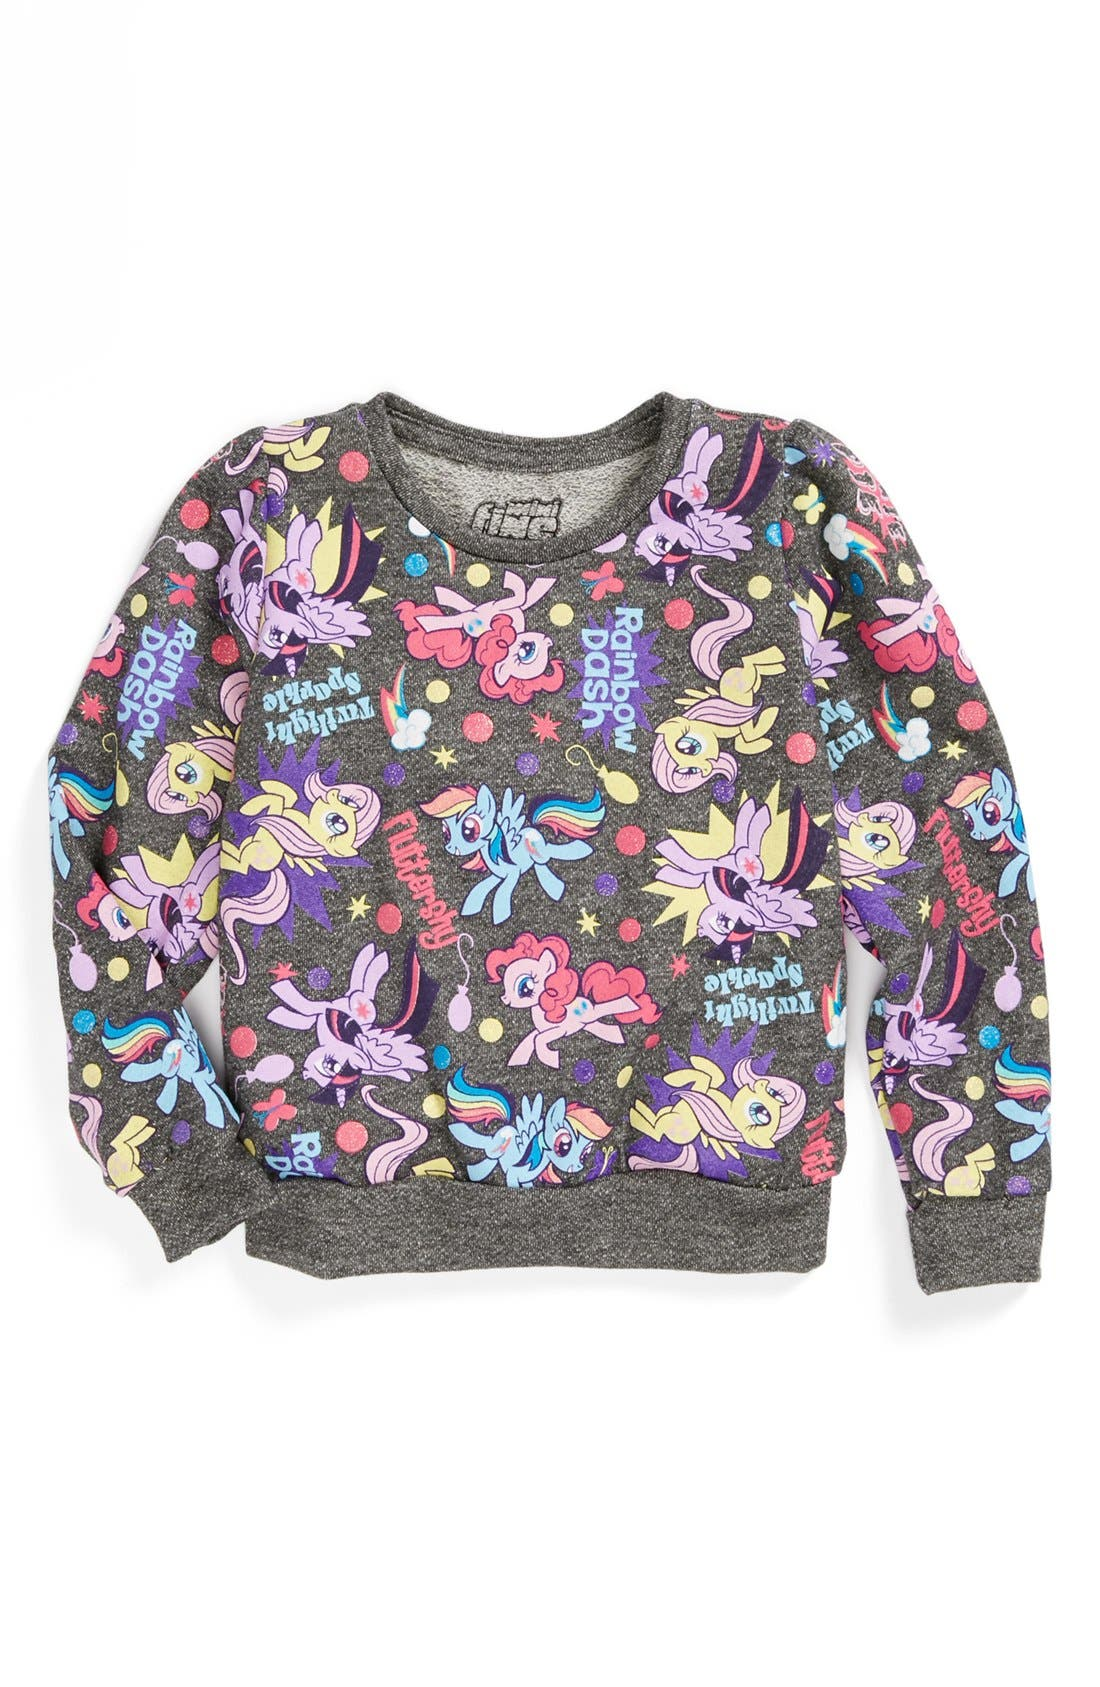 Alternate Image 1 Selected - Mighty Fine 'My Little Pony®' Sweatshirt (Little Girls & Big Girls)